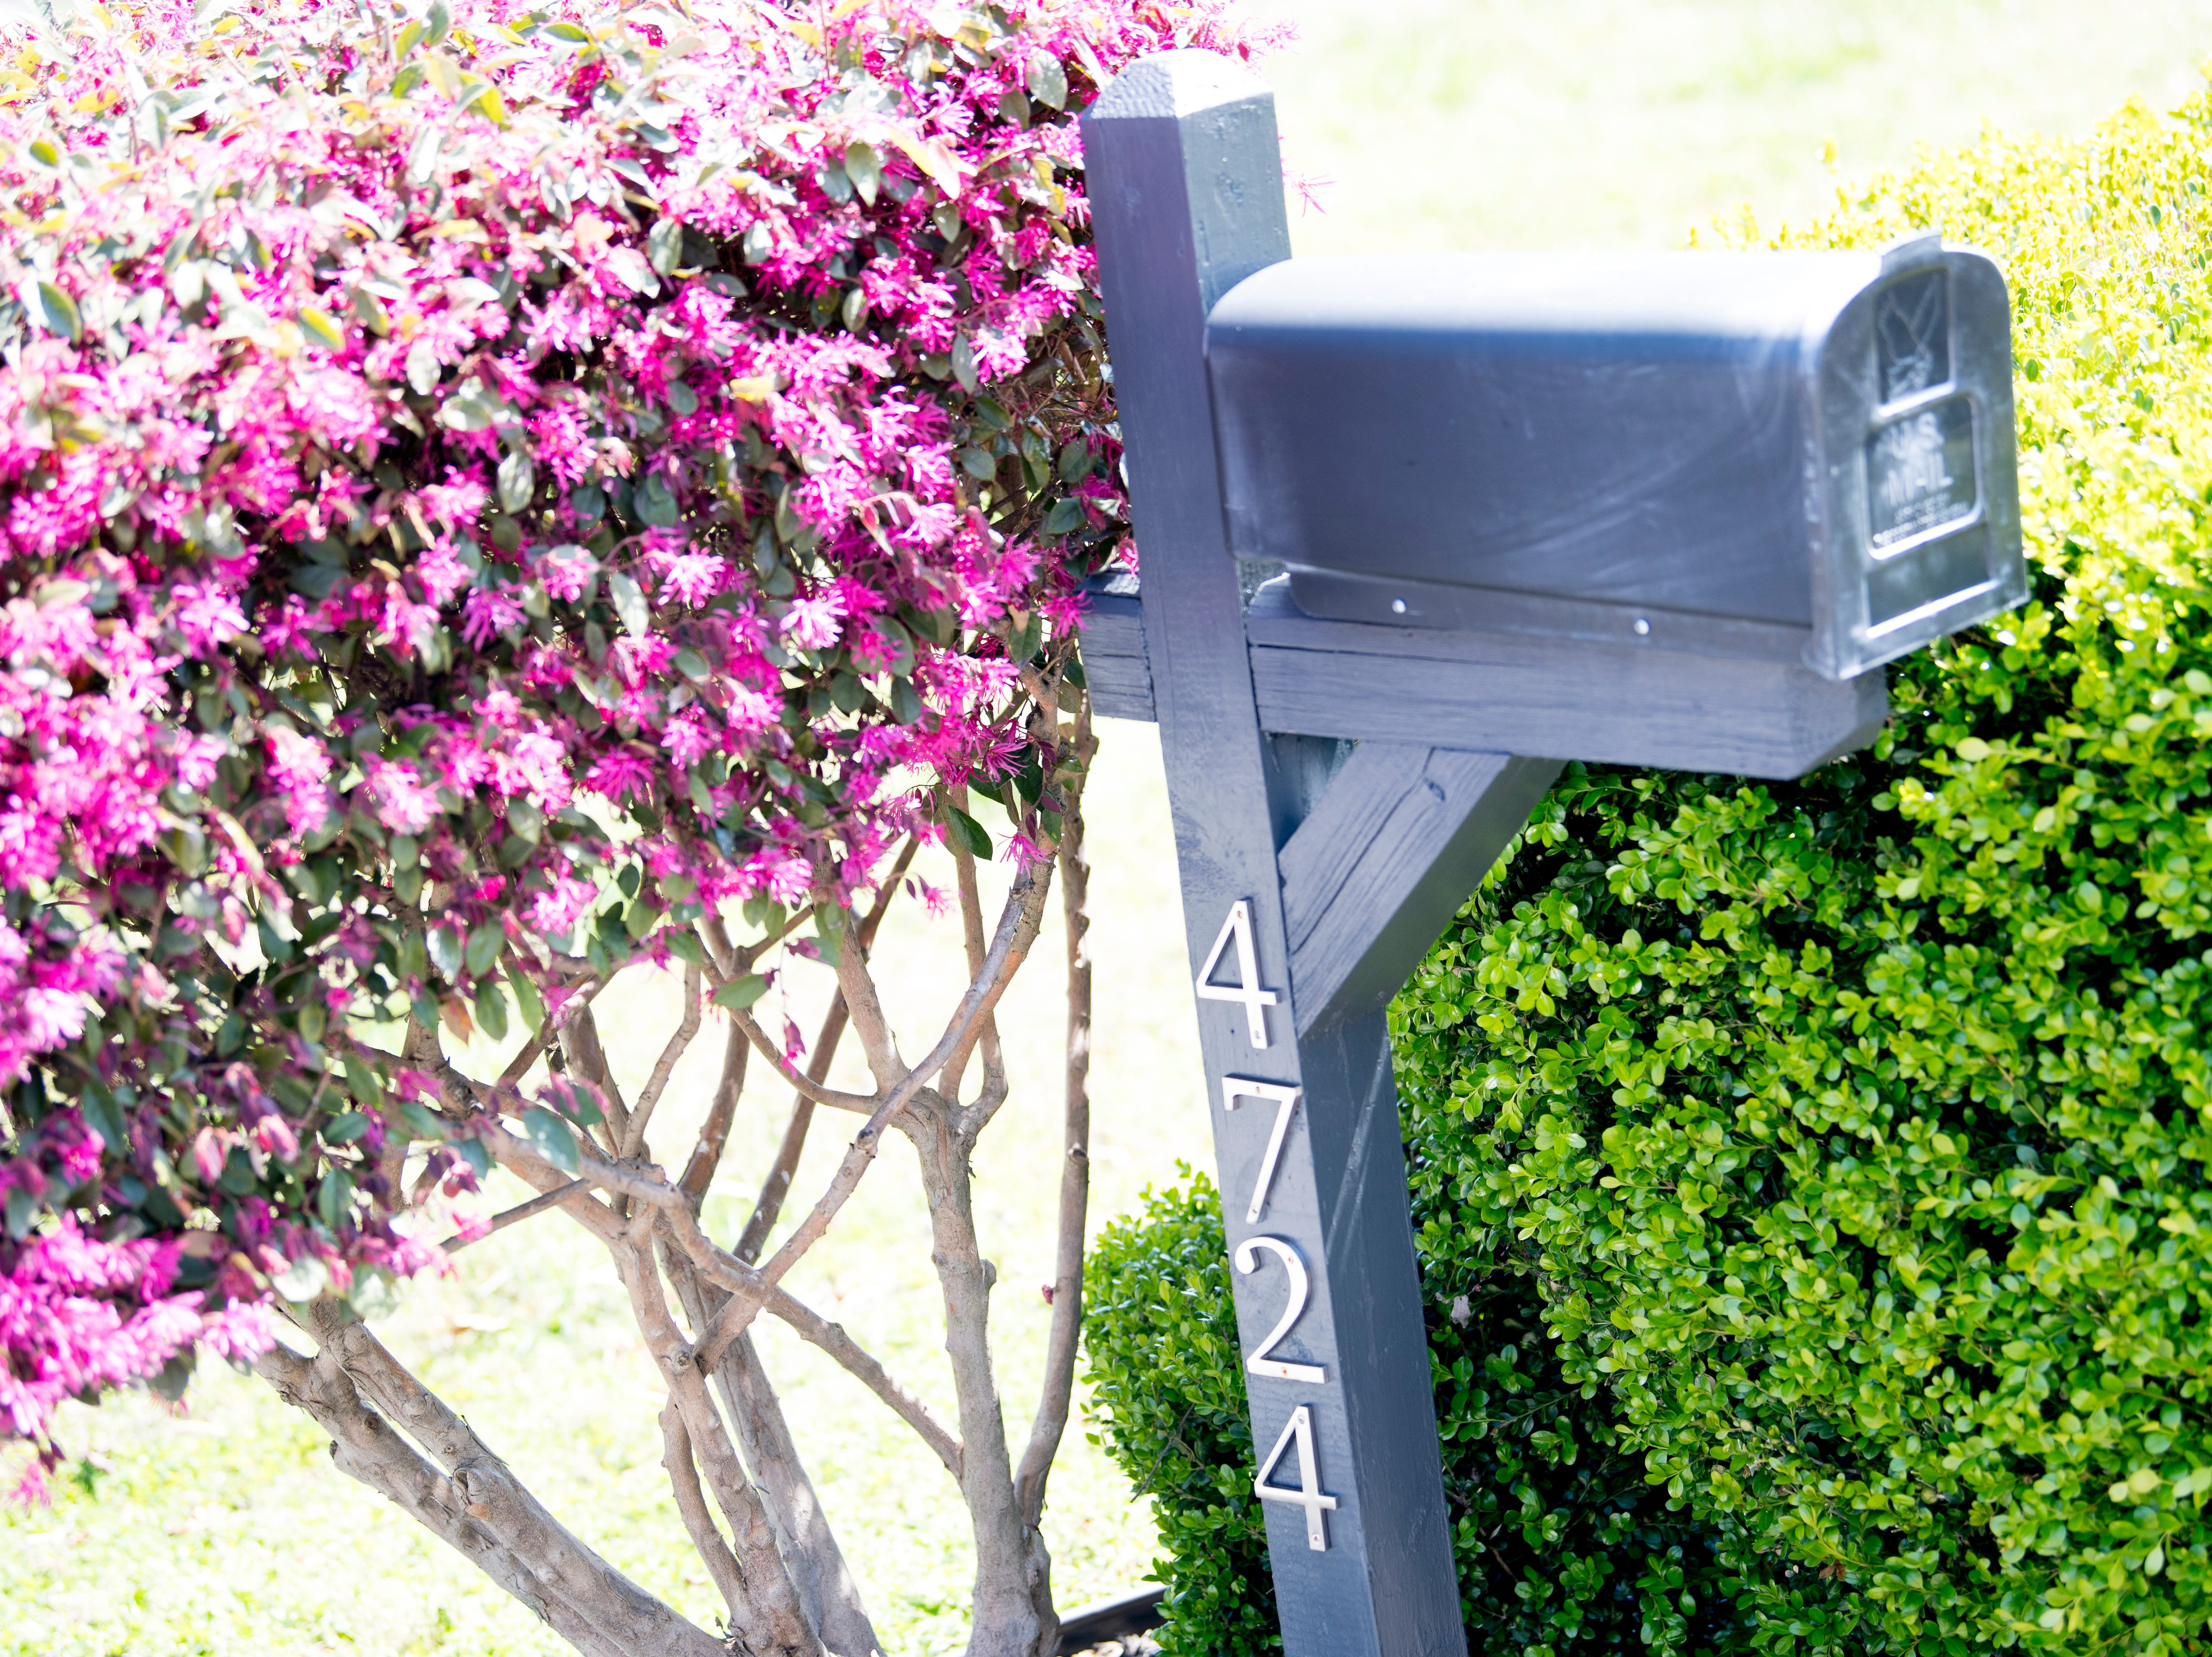 The mailbox of Miller and Gurney's home off McKamey Road west of Knoxville, Tennessee on Wednesday, April 3, 2019. After months of house searching, the couple decided to move into their current home last December after making some small compromises like being further away from downtown.